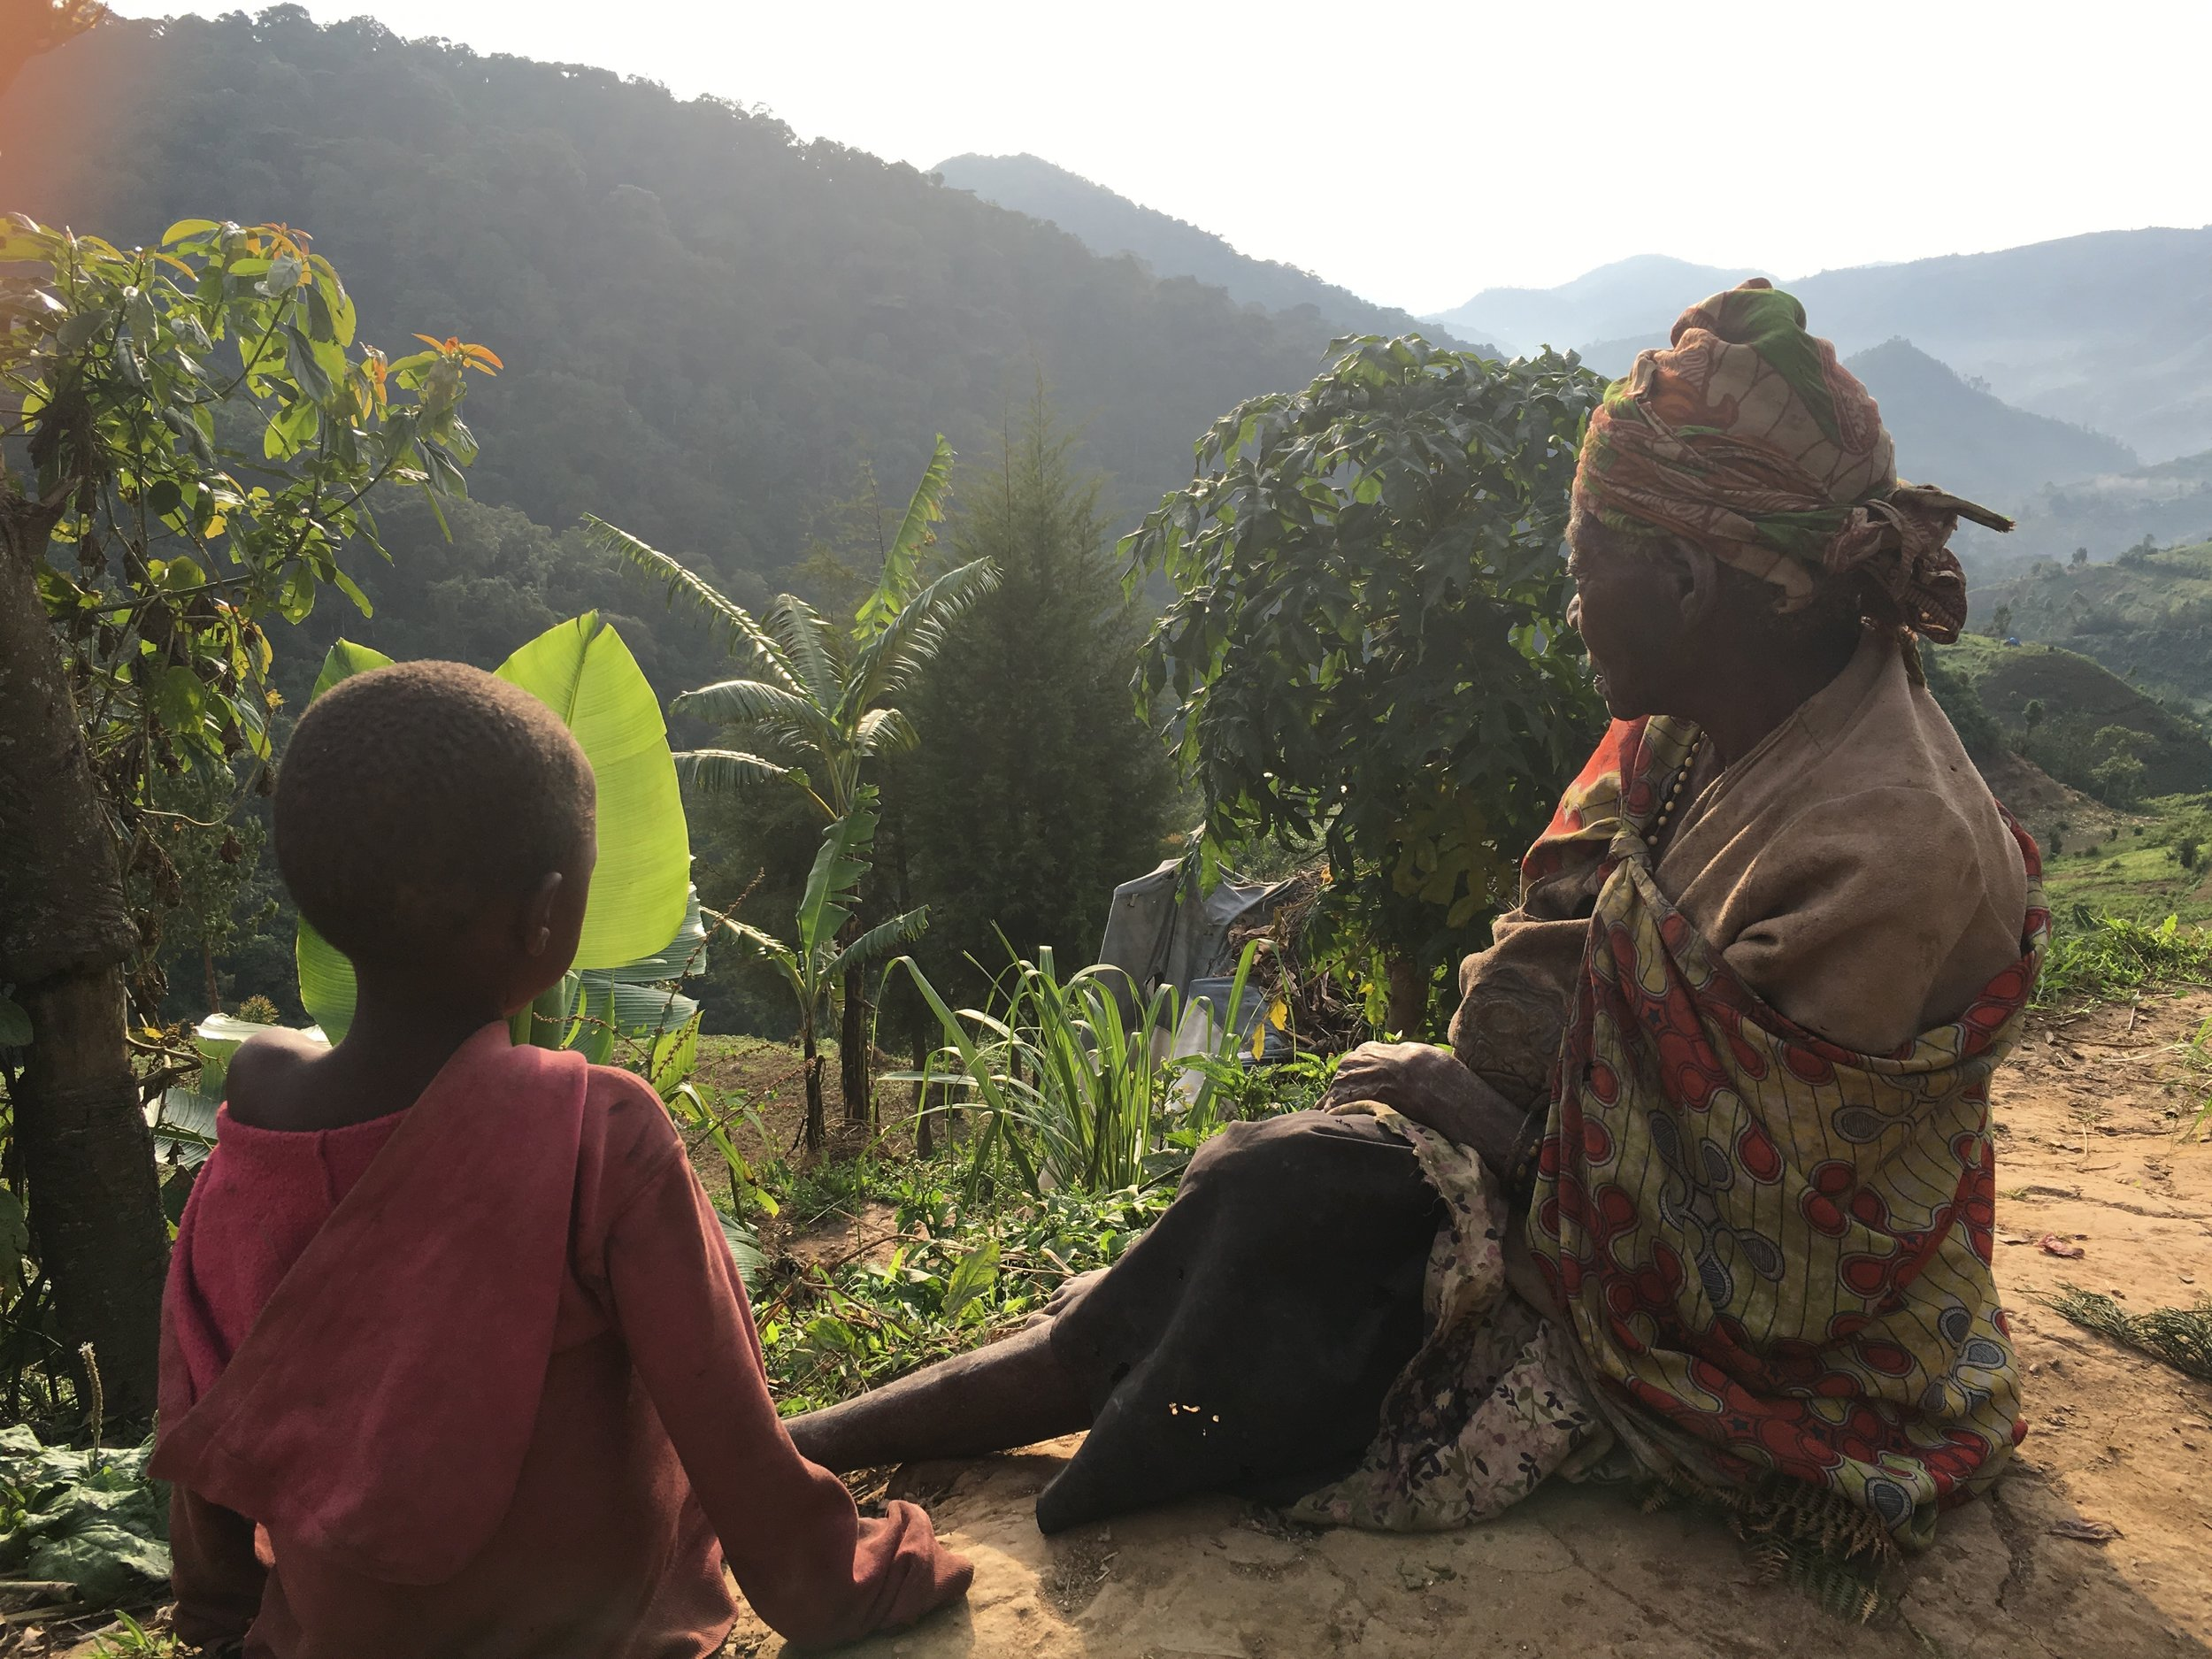 90 year old Batwa woman gazes upon her former home, the Bwindi Impenetrable Rain Forest, with her grandson.